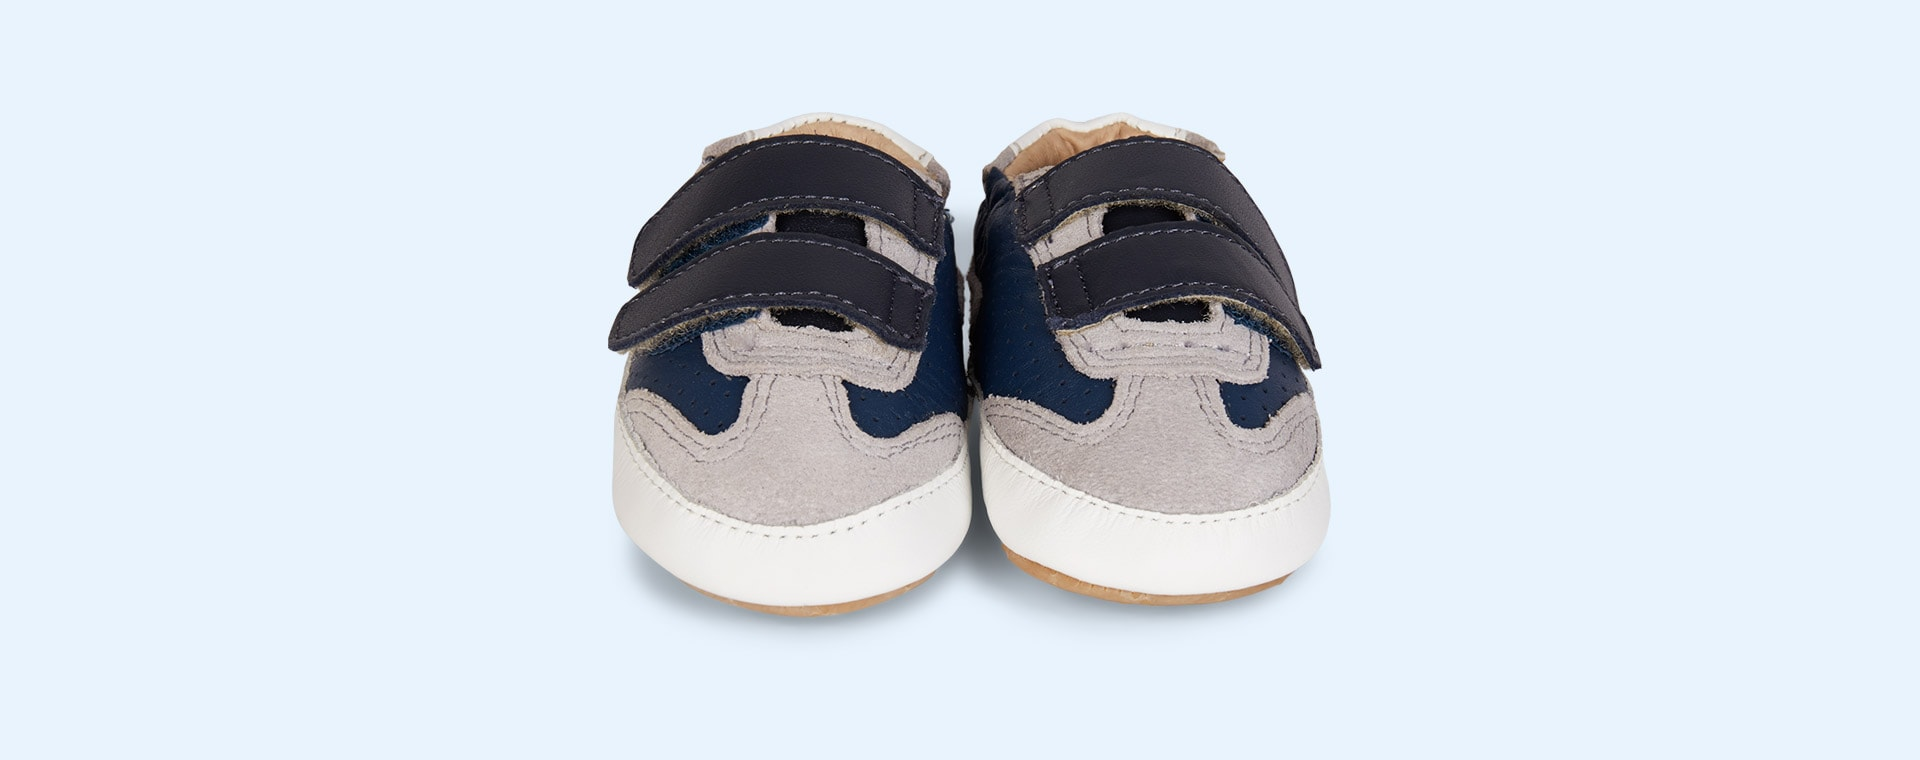 Navy old soles AW'19 Revival Baby Soft sole shoe